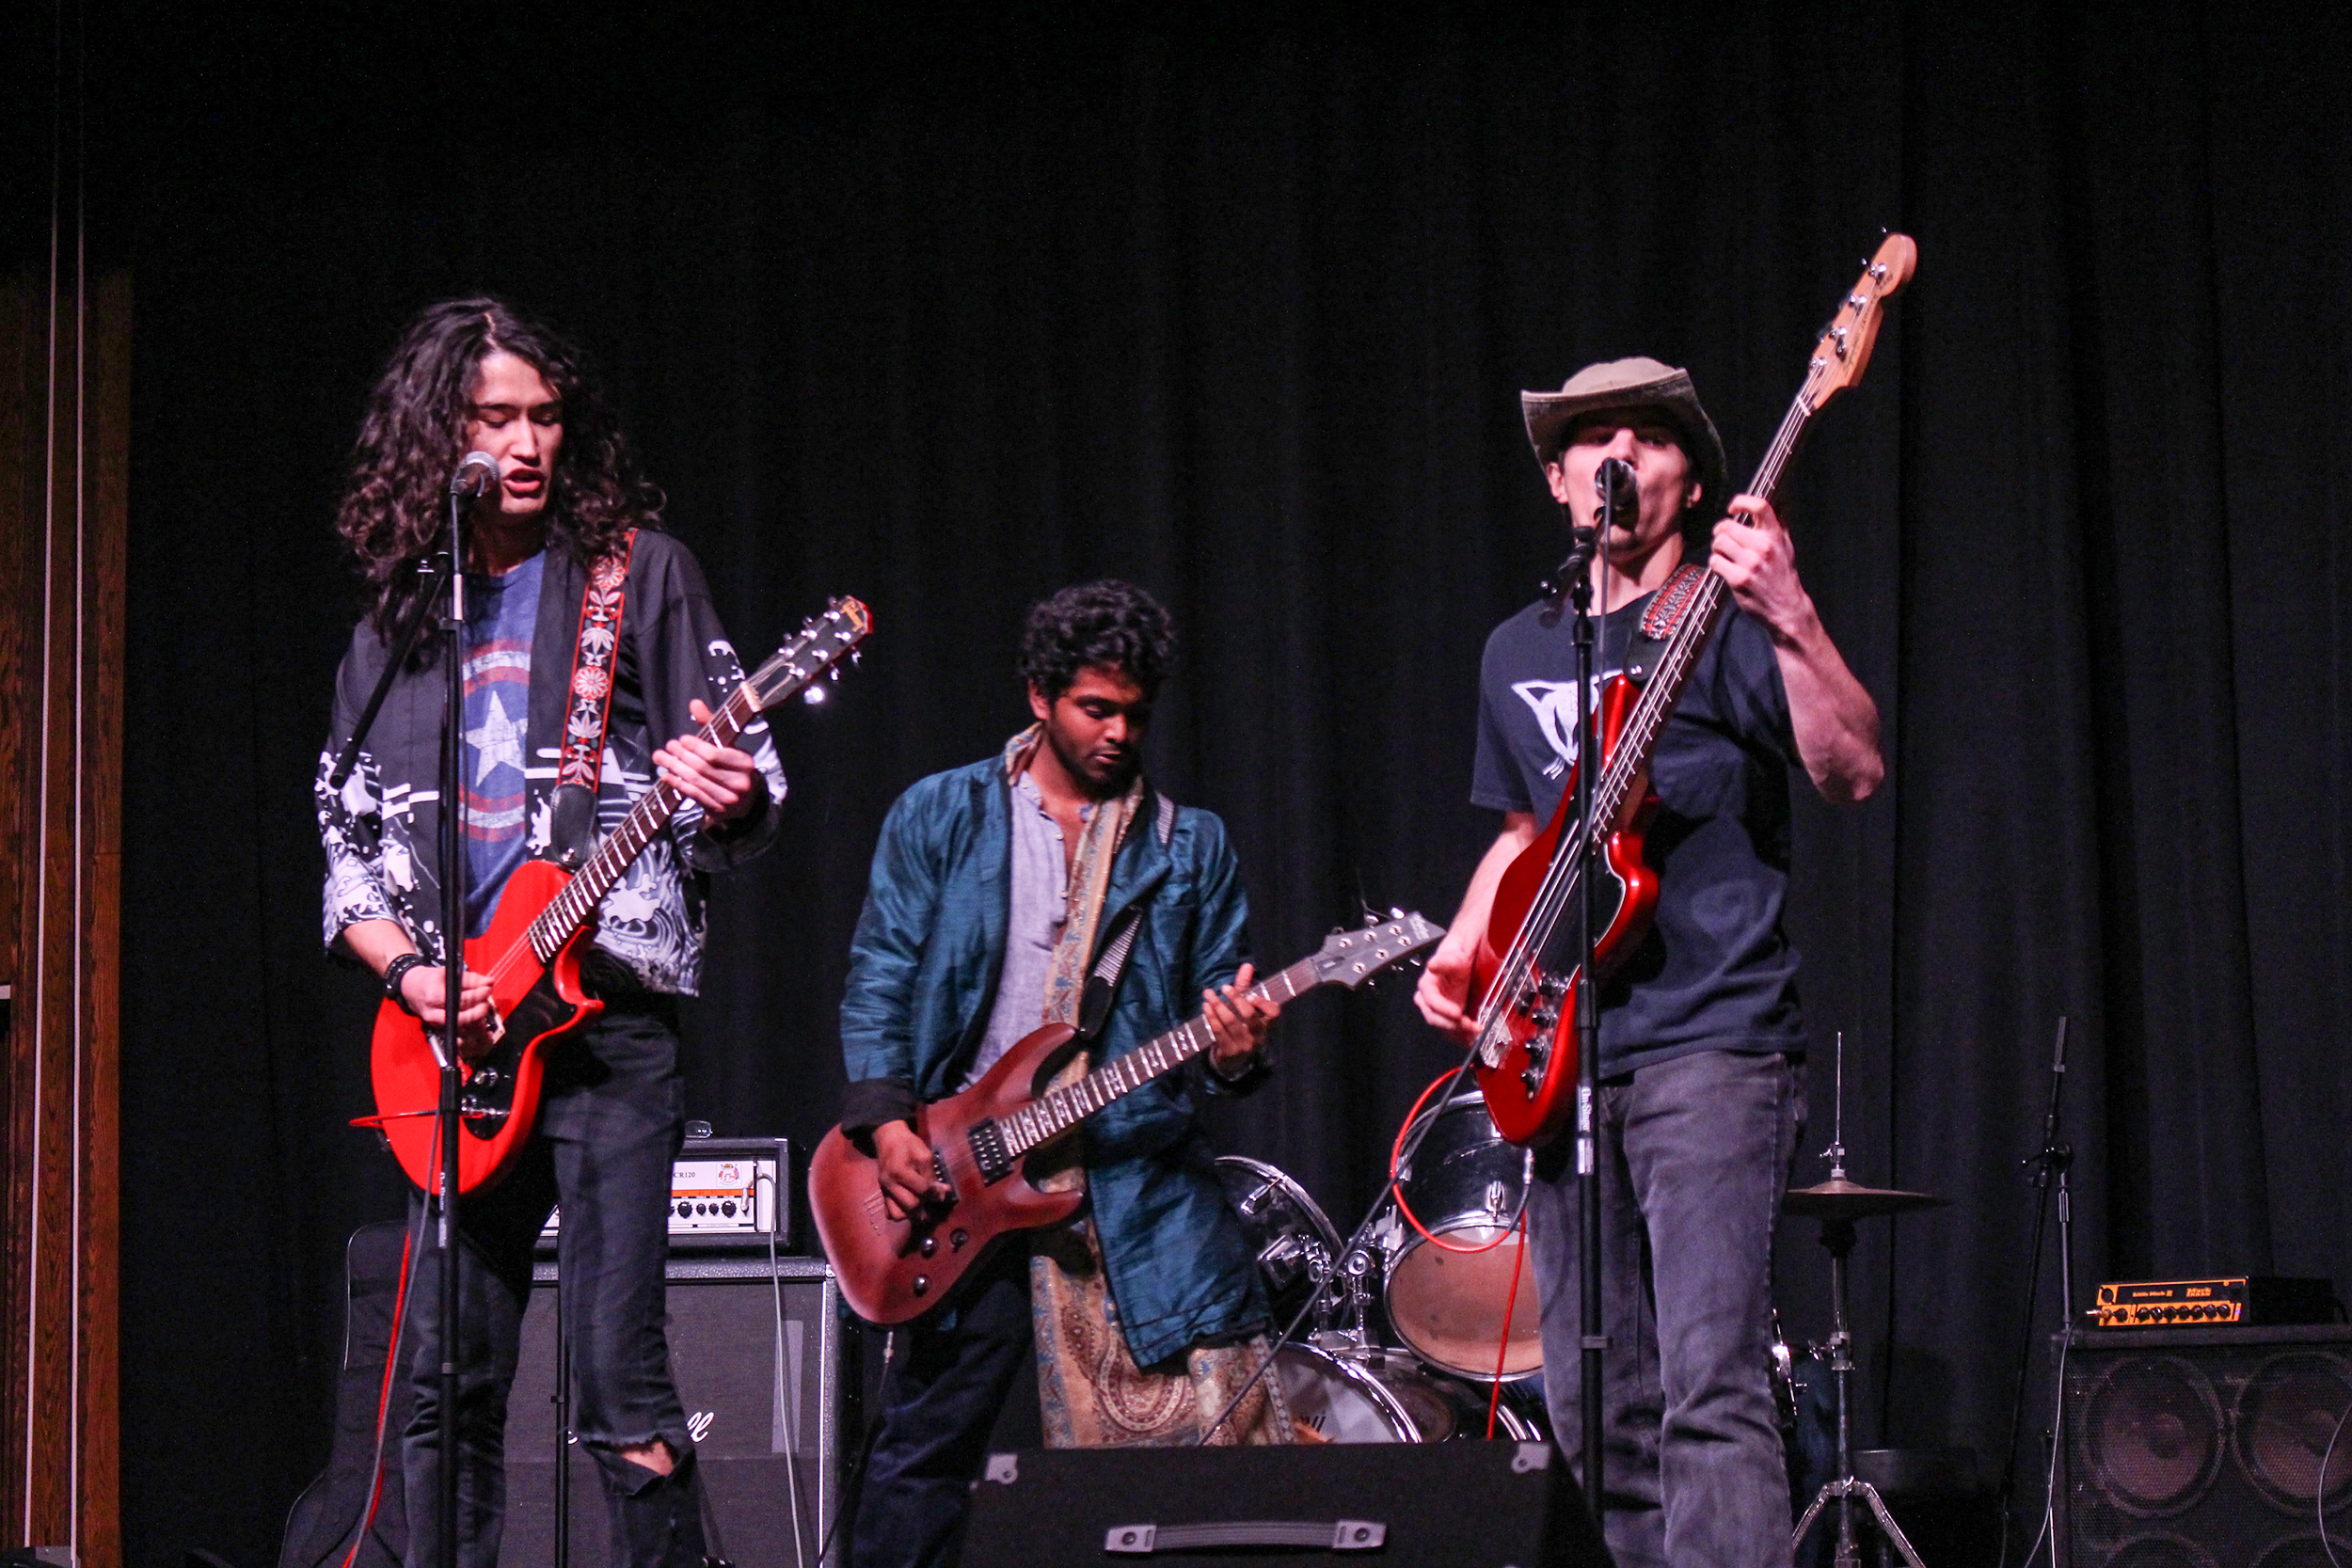 The band Scarecrow Show, including members communication major senior Vincent Lema (pictured left) and Ben Juchniewicz '18 (pictured right), performed at the Battle of the Bands on Thursday April 11 with guest musicians like physics major senior Praveen Wakwella (pictured center). Scarecrow Show performed alongside Shades of Nance, Airline Food, Crustacean Weekend and solo singers junior history major Toby Youngman and first-year Maya Cottone (Annie Renaud/ staff photographer).